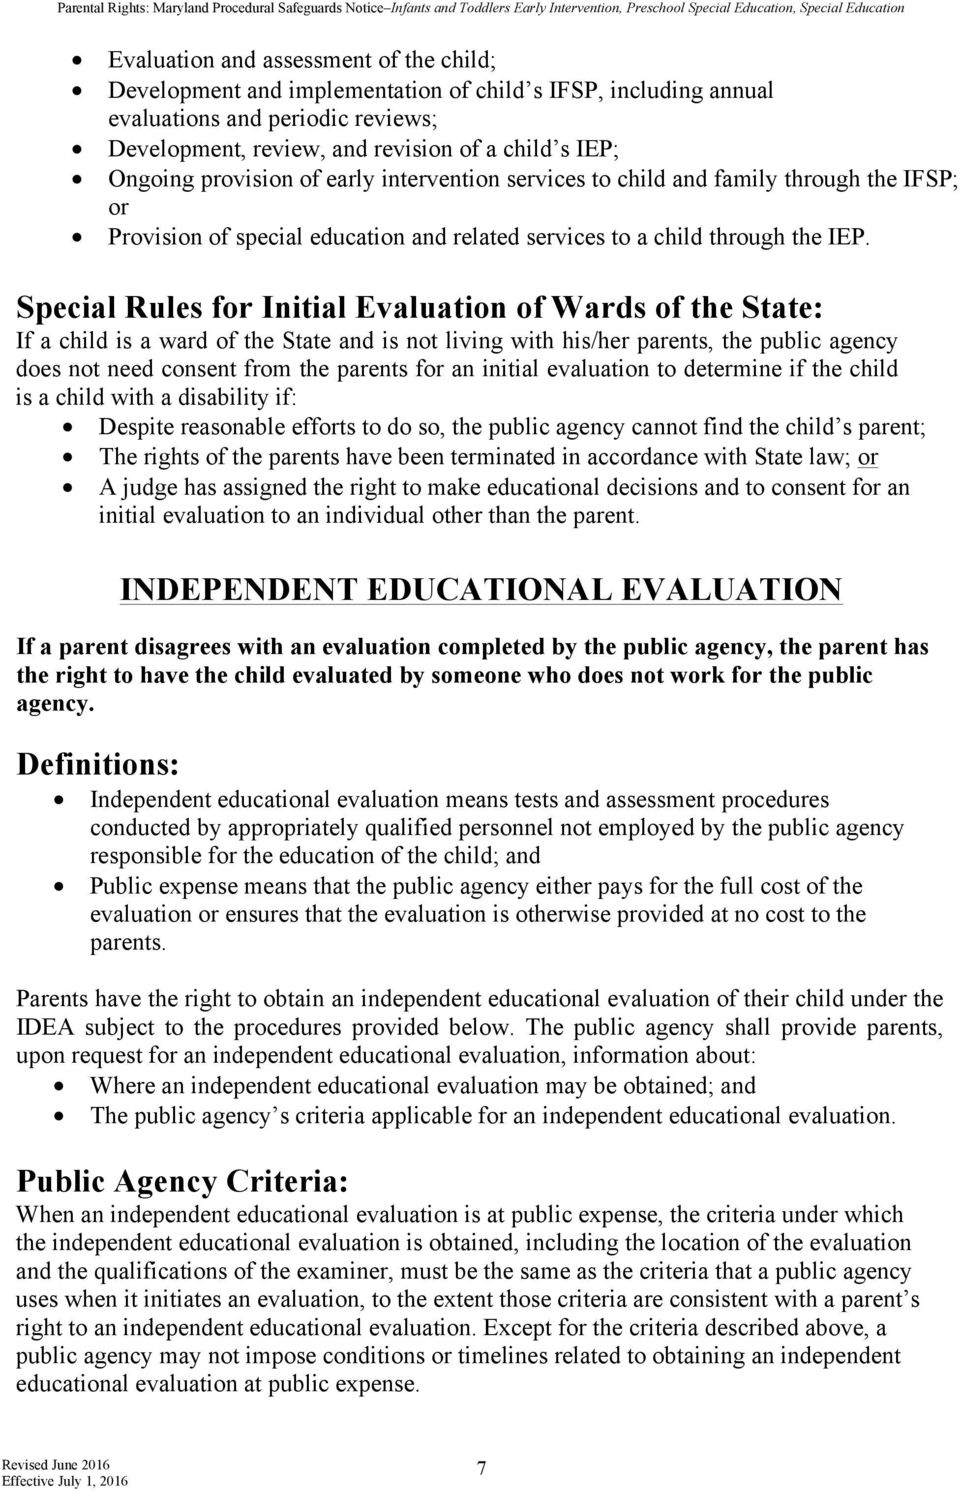 Procedural Safeguards In Special Education Montana Office Of >> Parental Rights Maryland Procedural Safeguards Notice Pdf